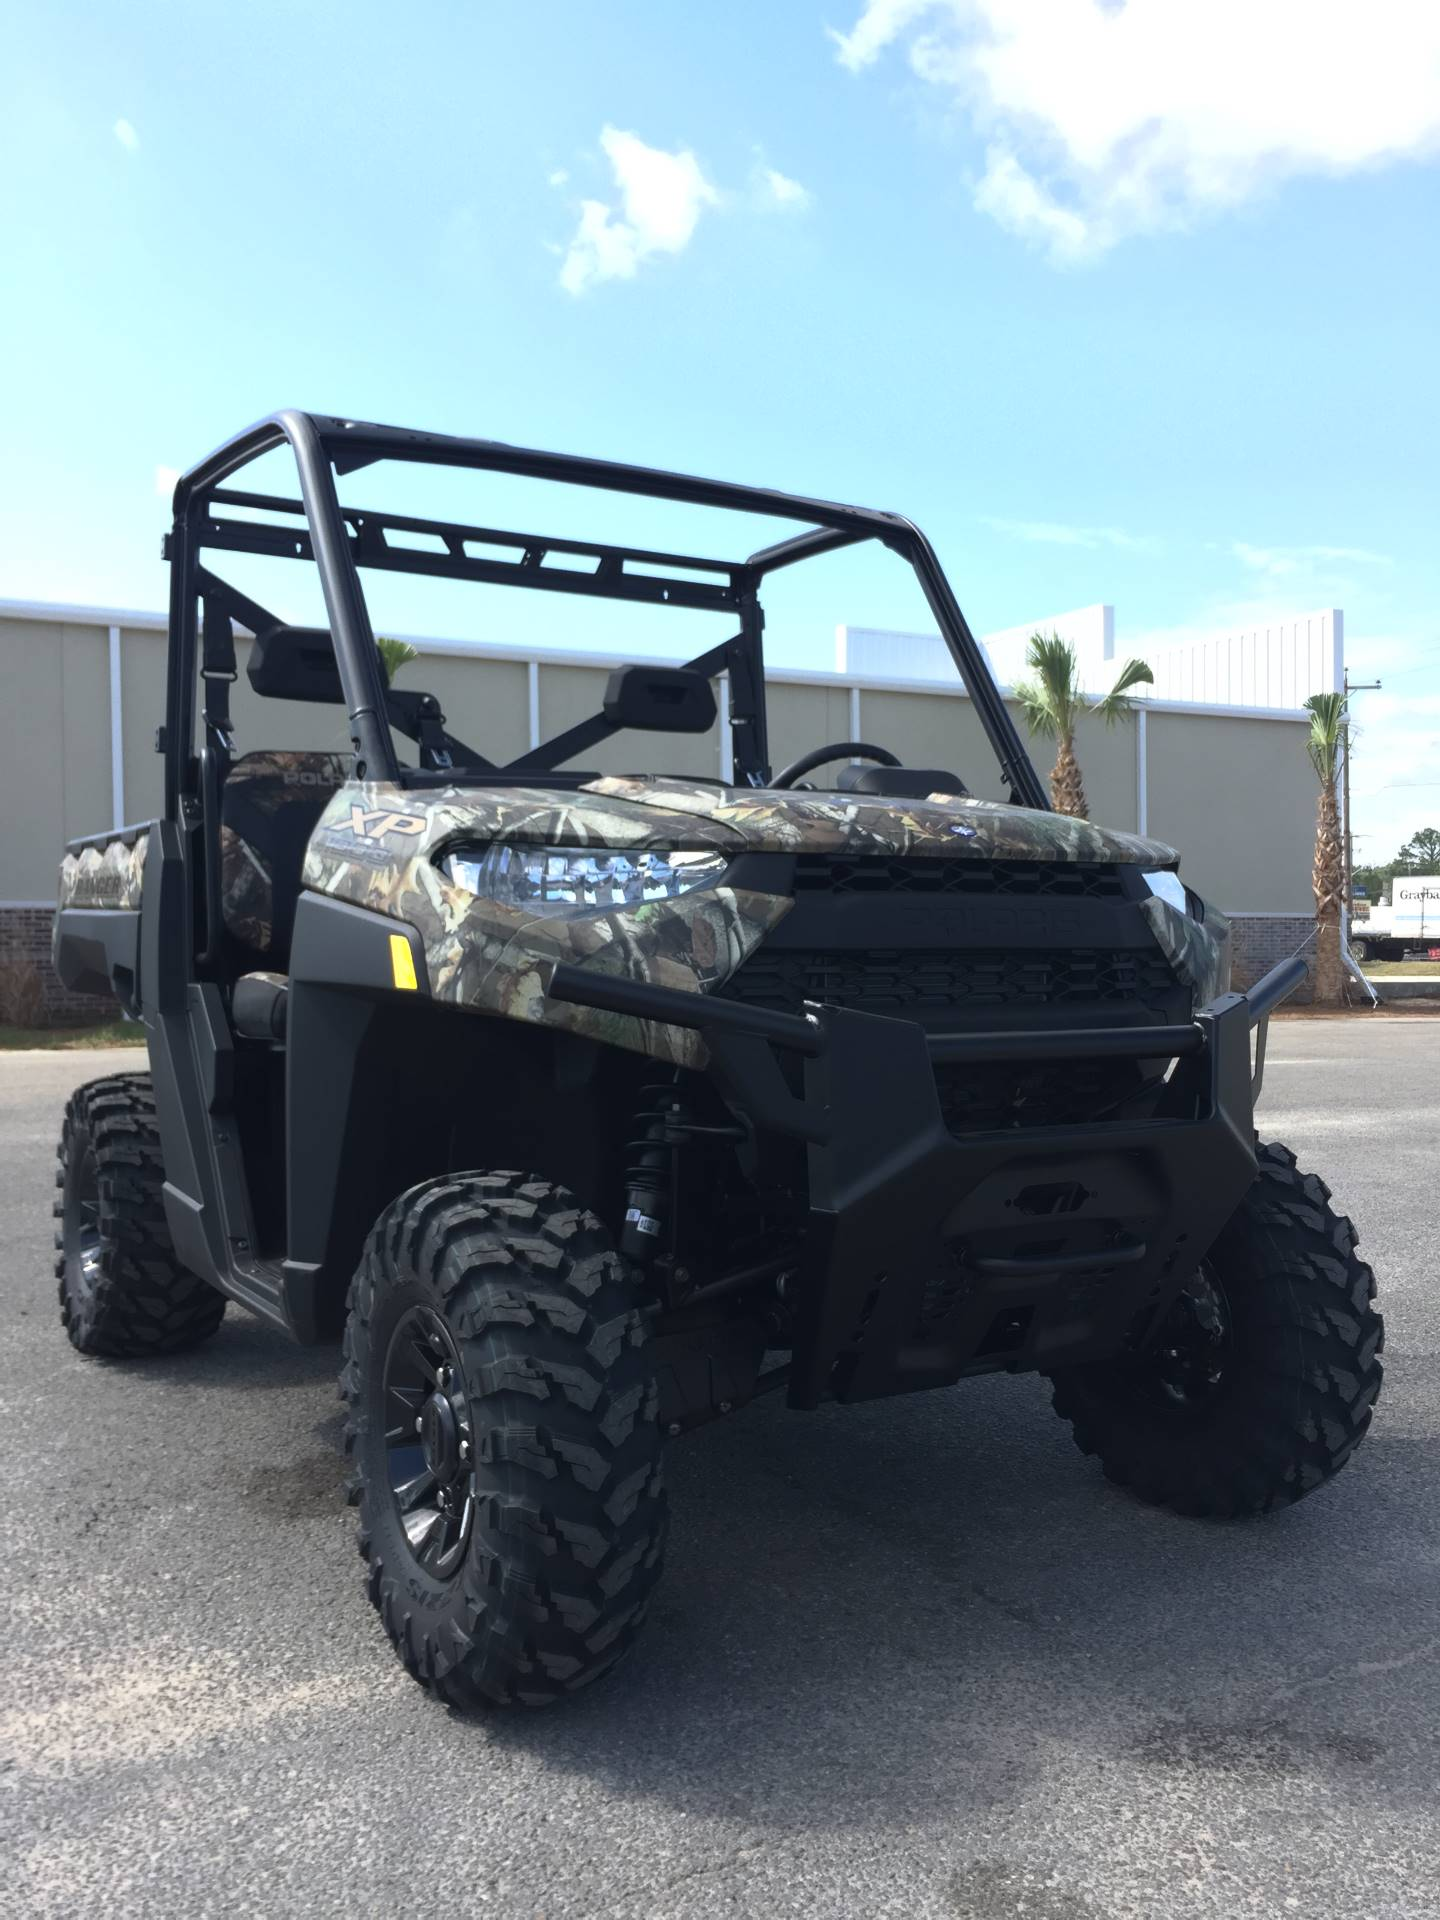 2020 Polaris Ranger XP 1000 Premium in Pascagoula, Mississippi - Photo 4